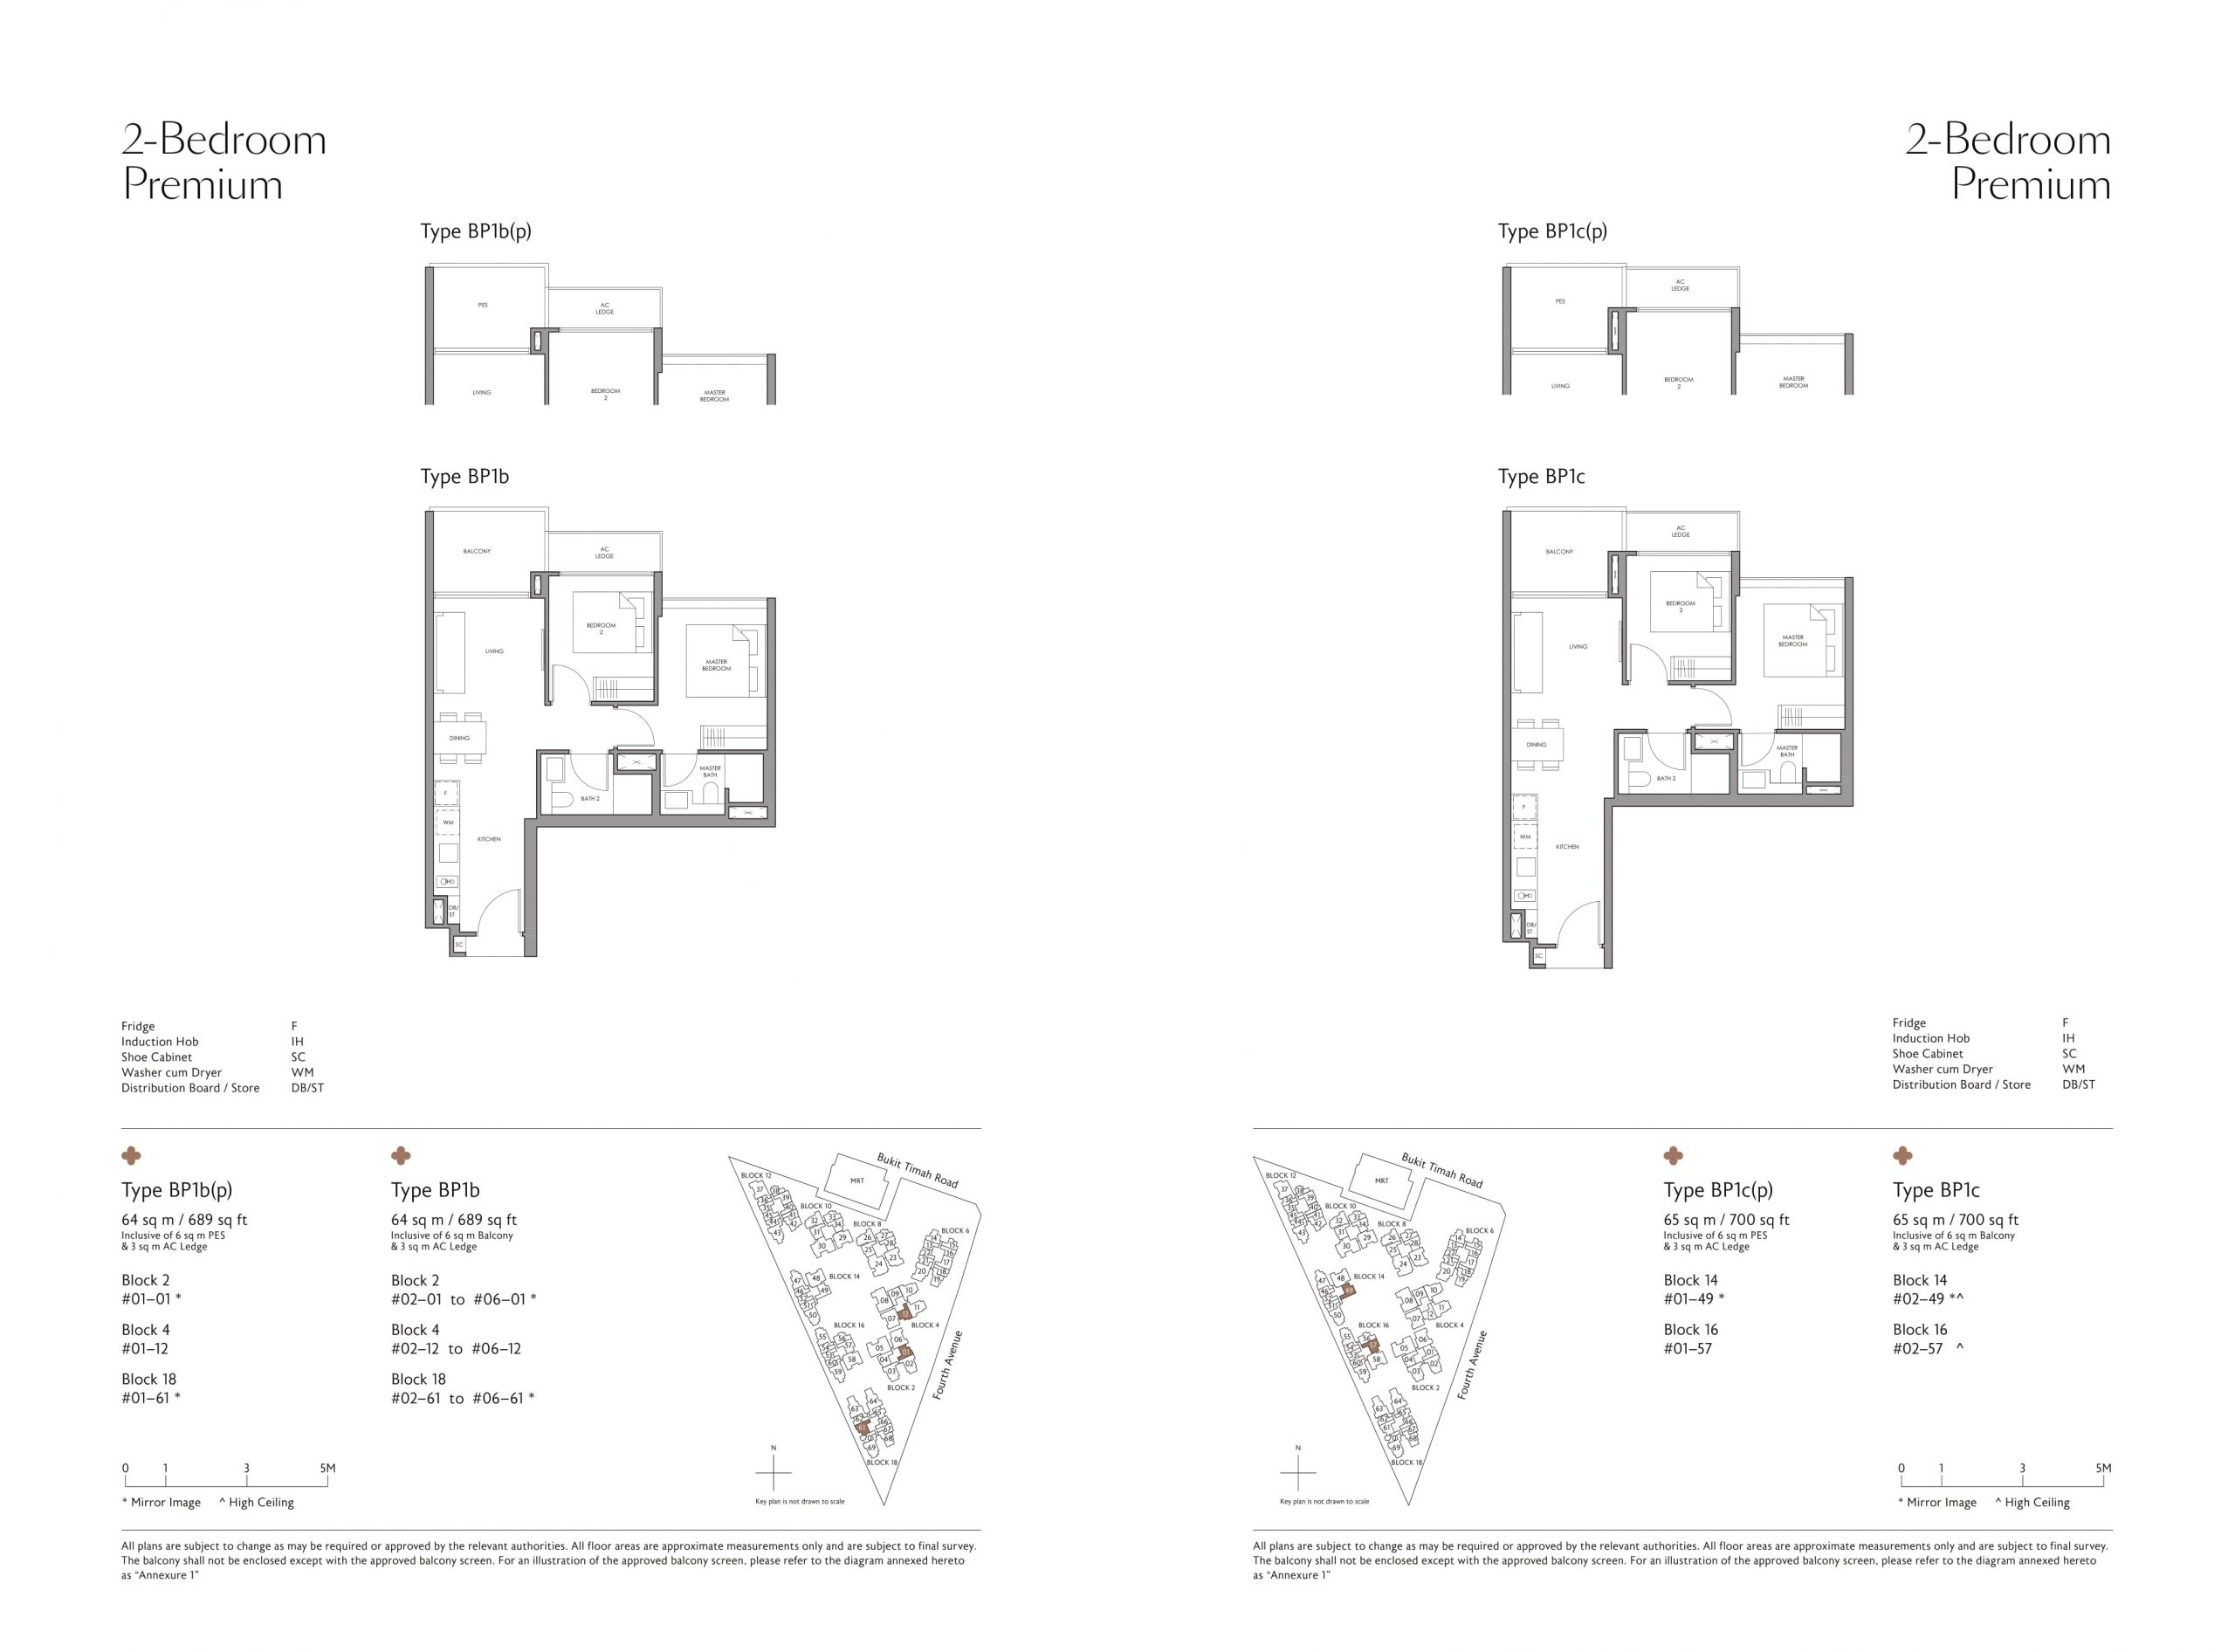 Fourth Avenue Residences' two-bedroom & two-bedroom premium types